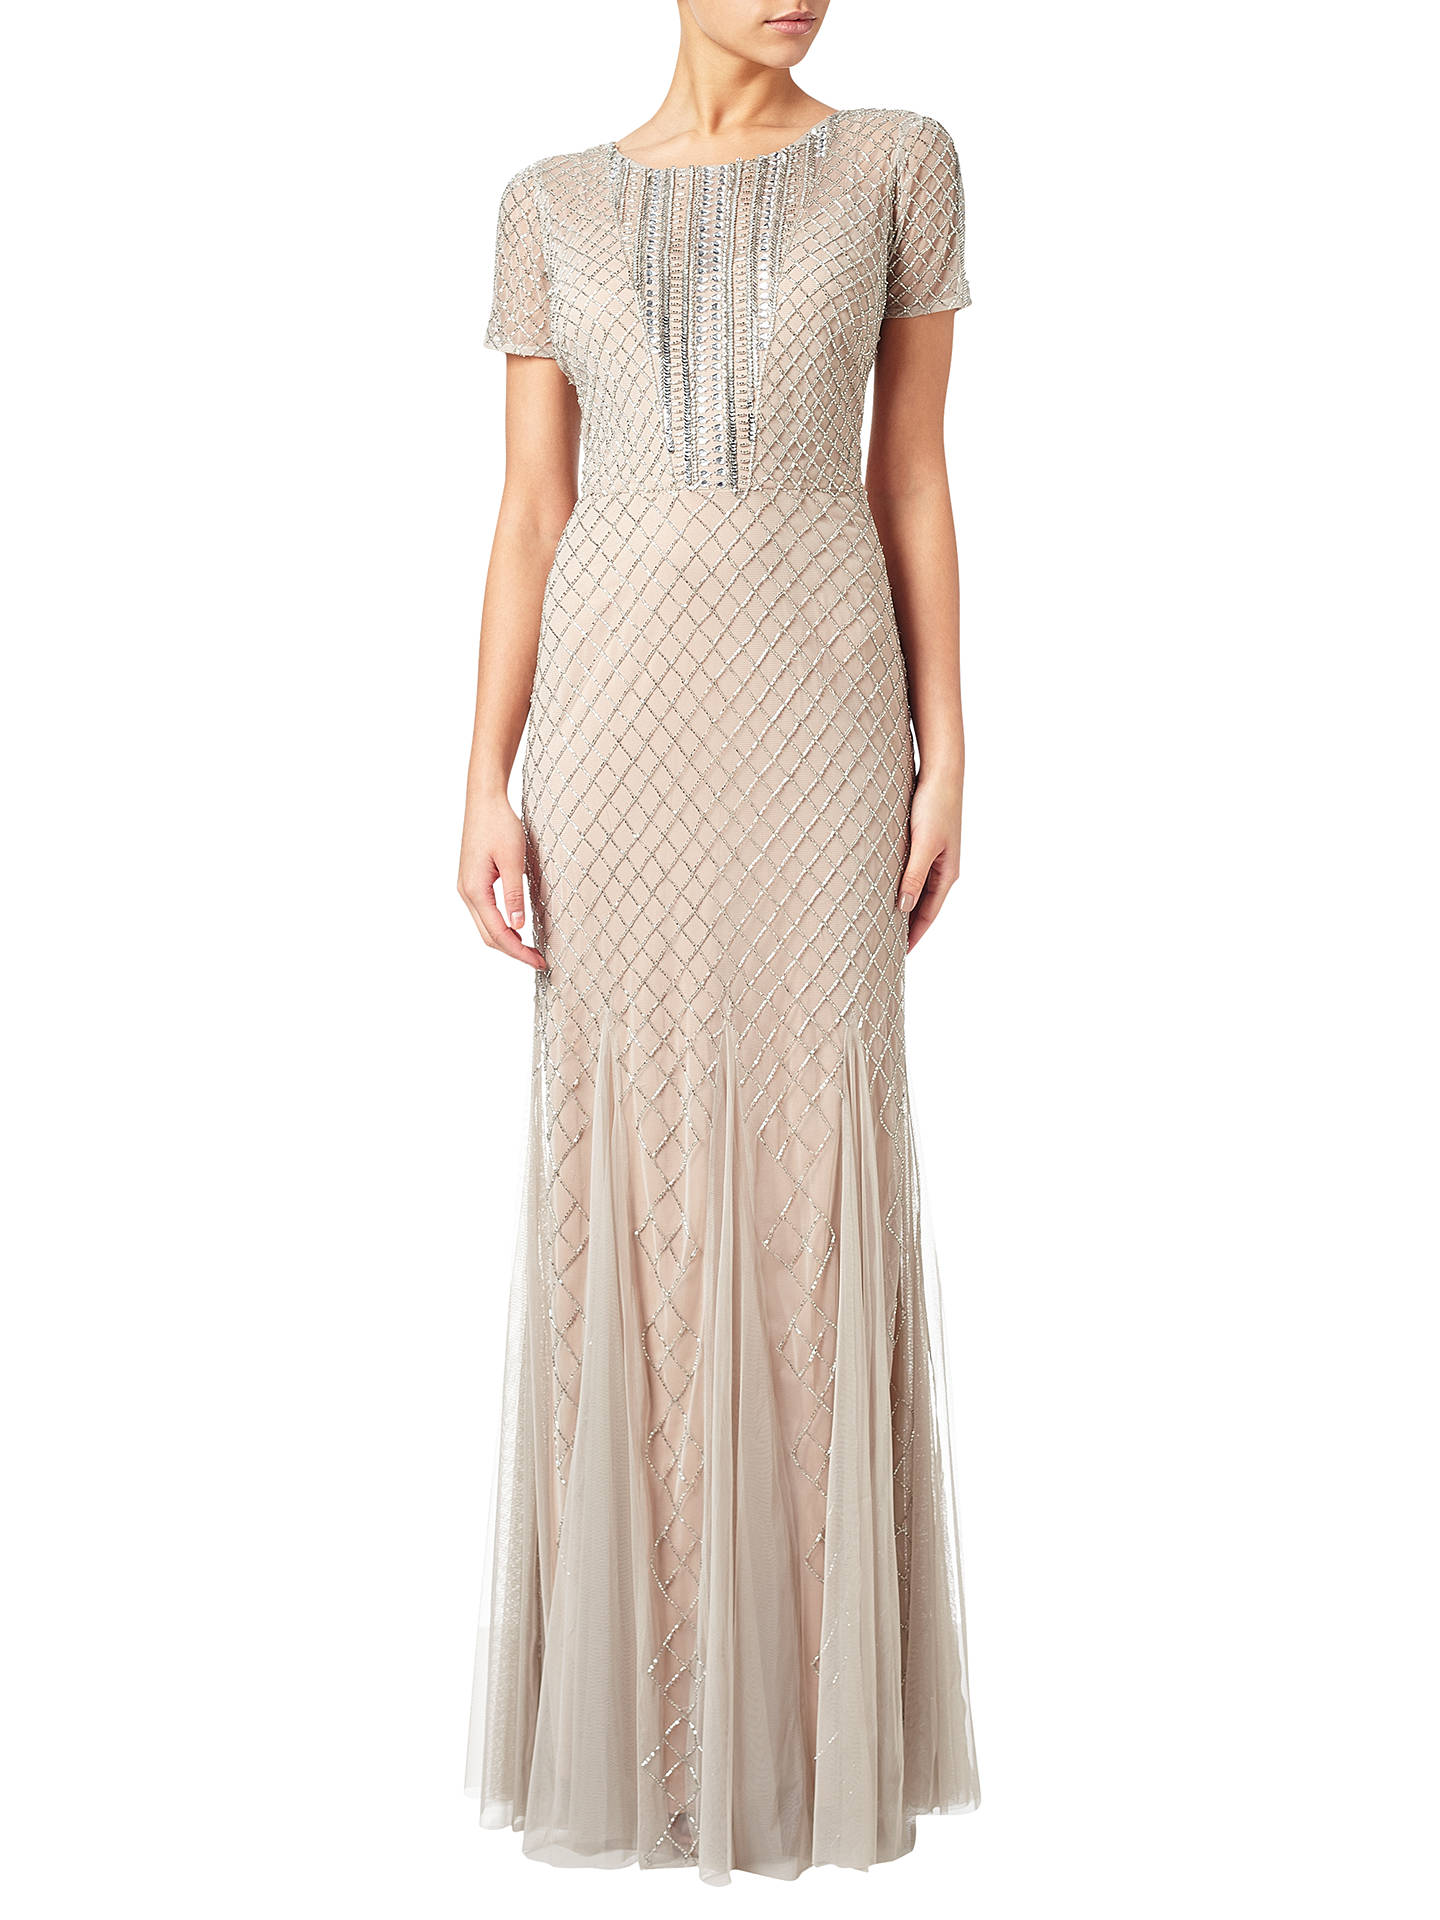 1a5792a5754 Buy Adrianna Papell Petite Short Sleeve Beaded Gown